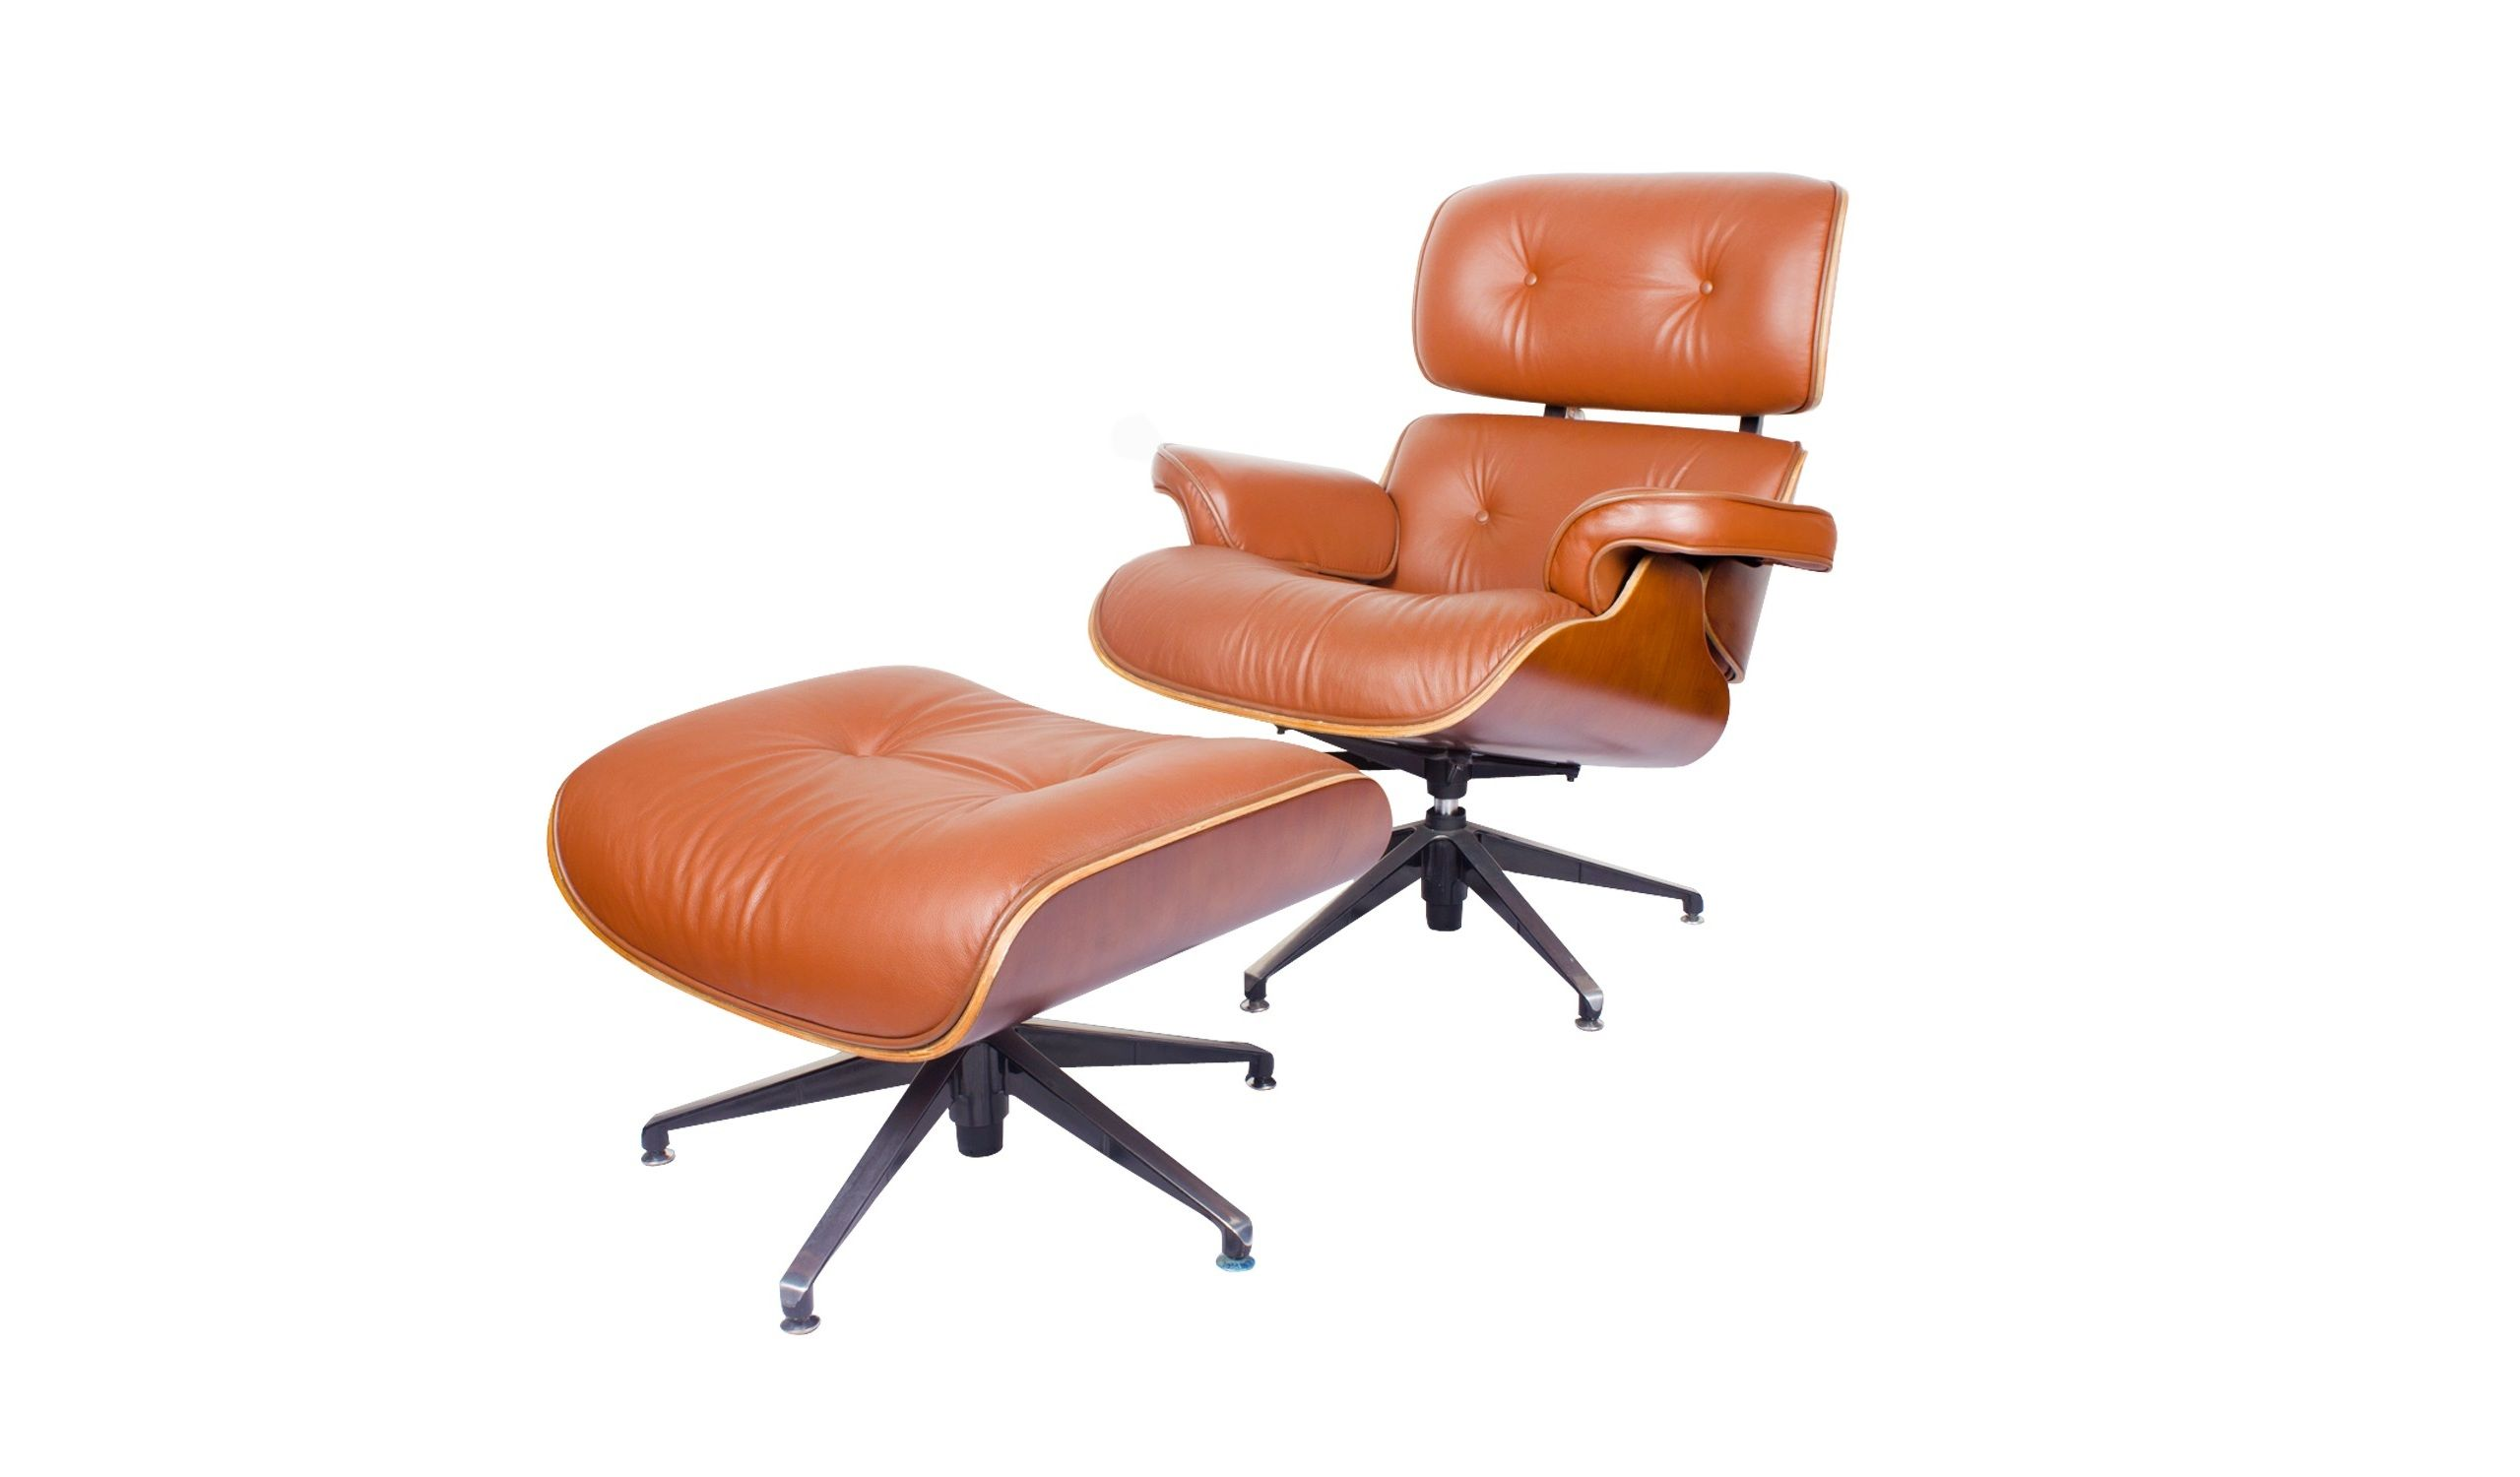 Buy office furniture online from Boss's Cabin. Offering a